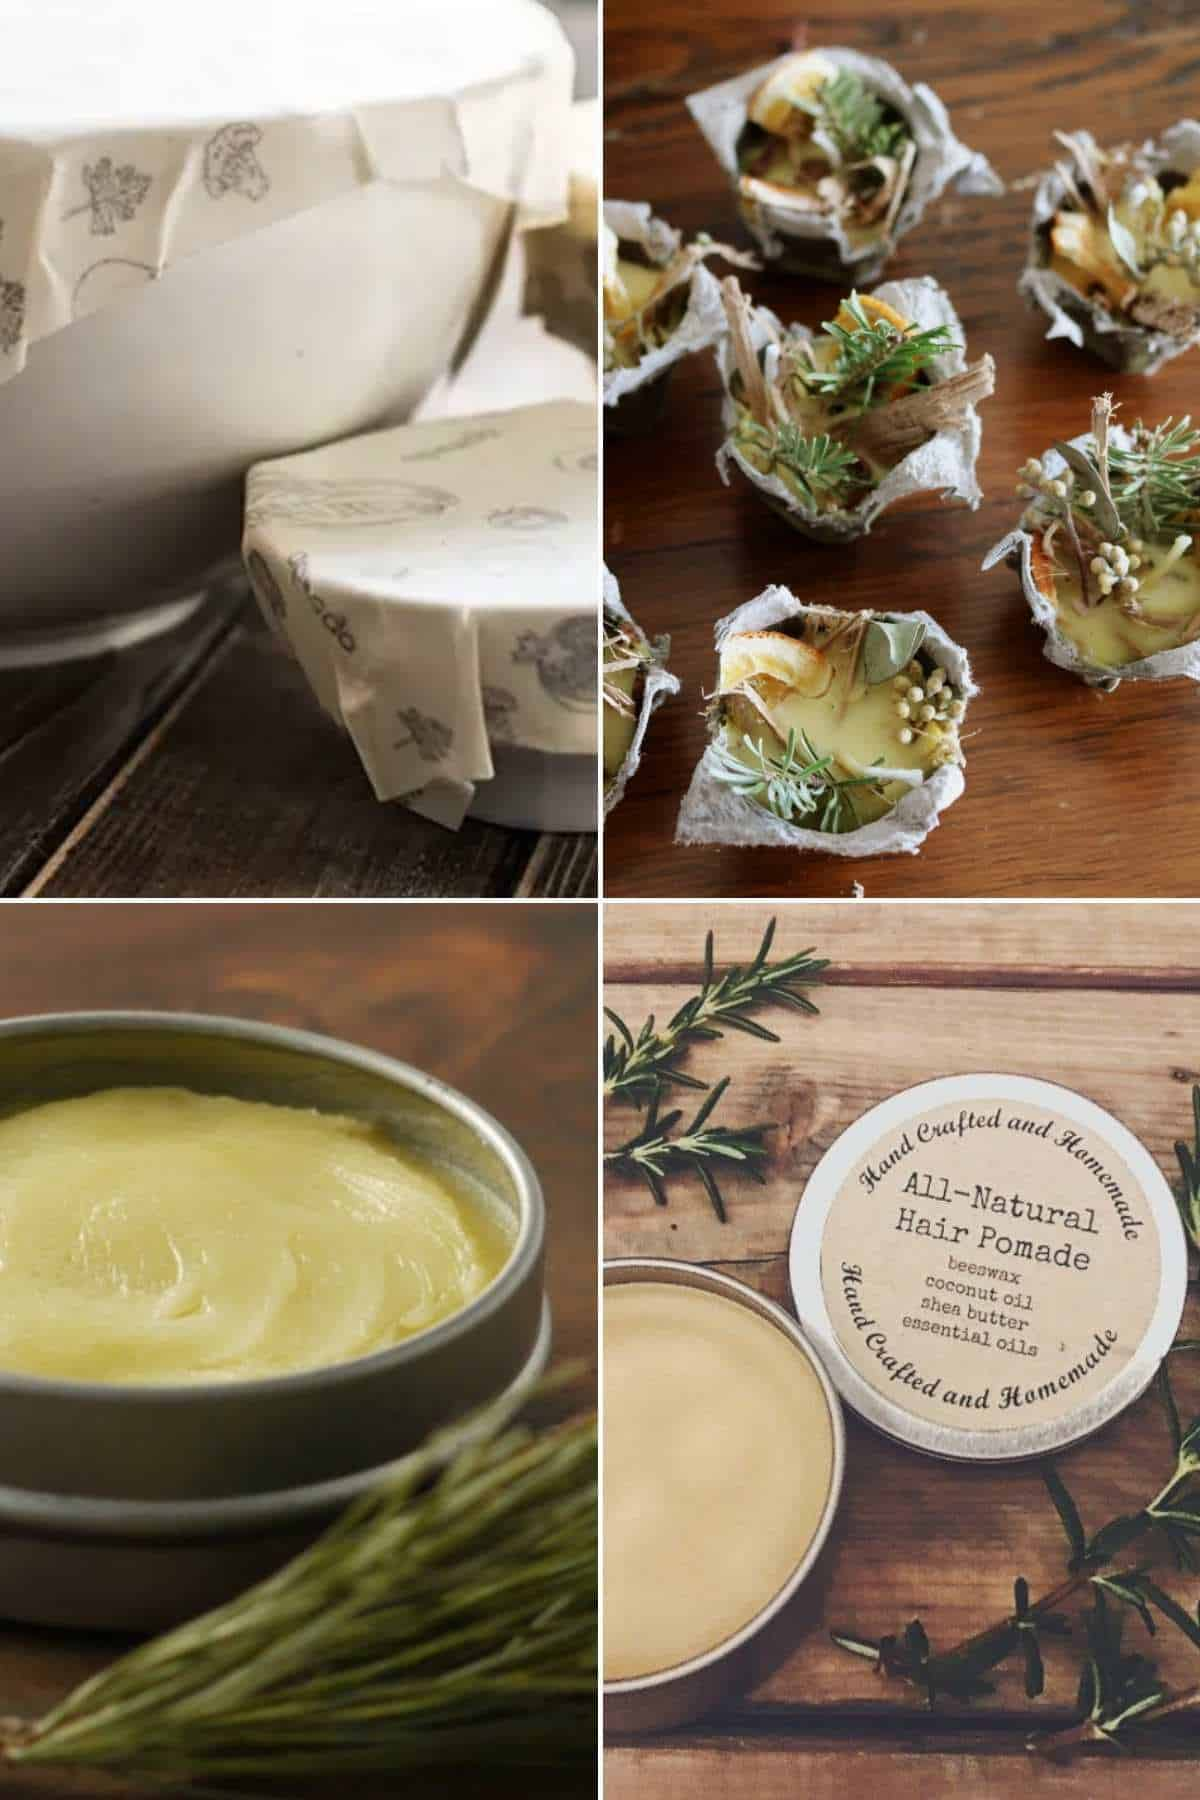 grid of 4 images showing beeswax food wrap, balm, fire starter and hair pomade